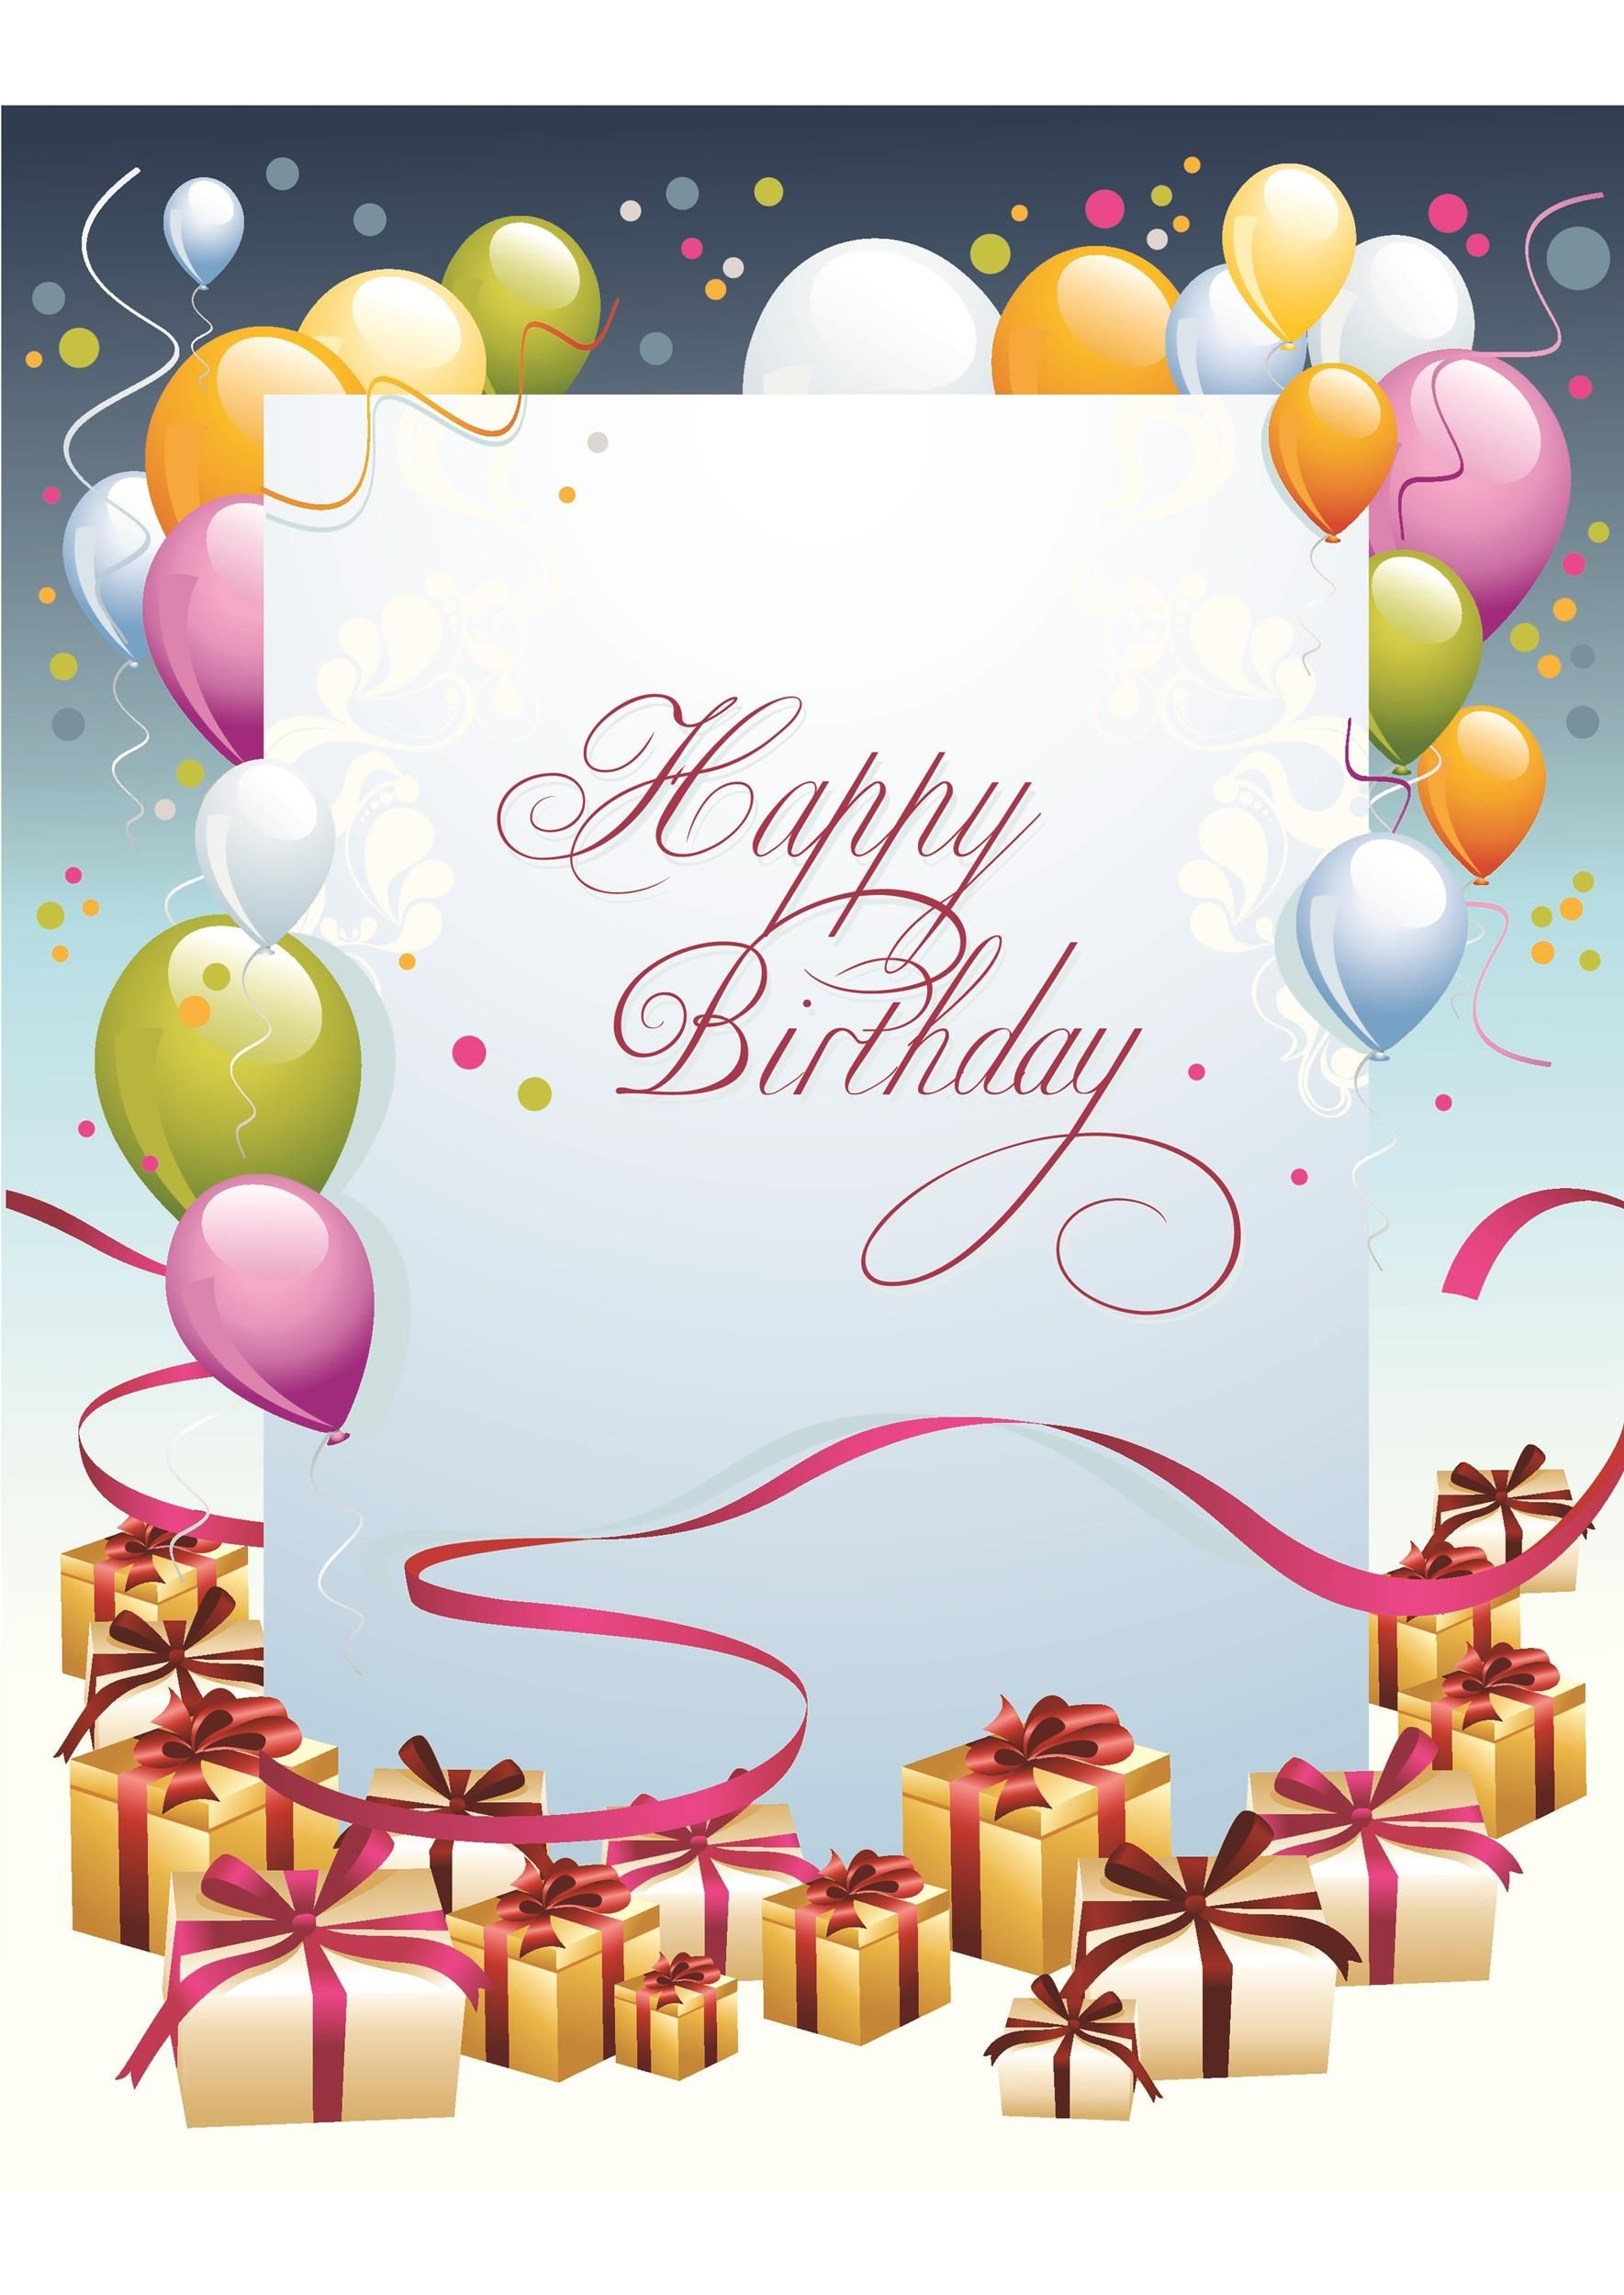 Free Downloadable Postcard Templates Creative Professional Template Ideas Free Birthday Card Download Birthday Cards Birthday Card Template Free